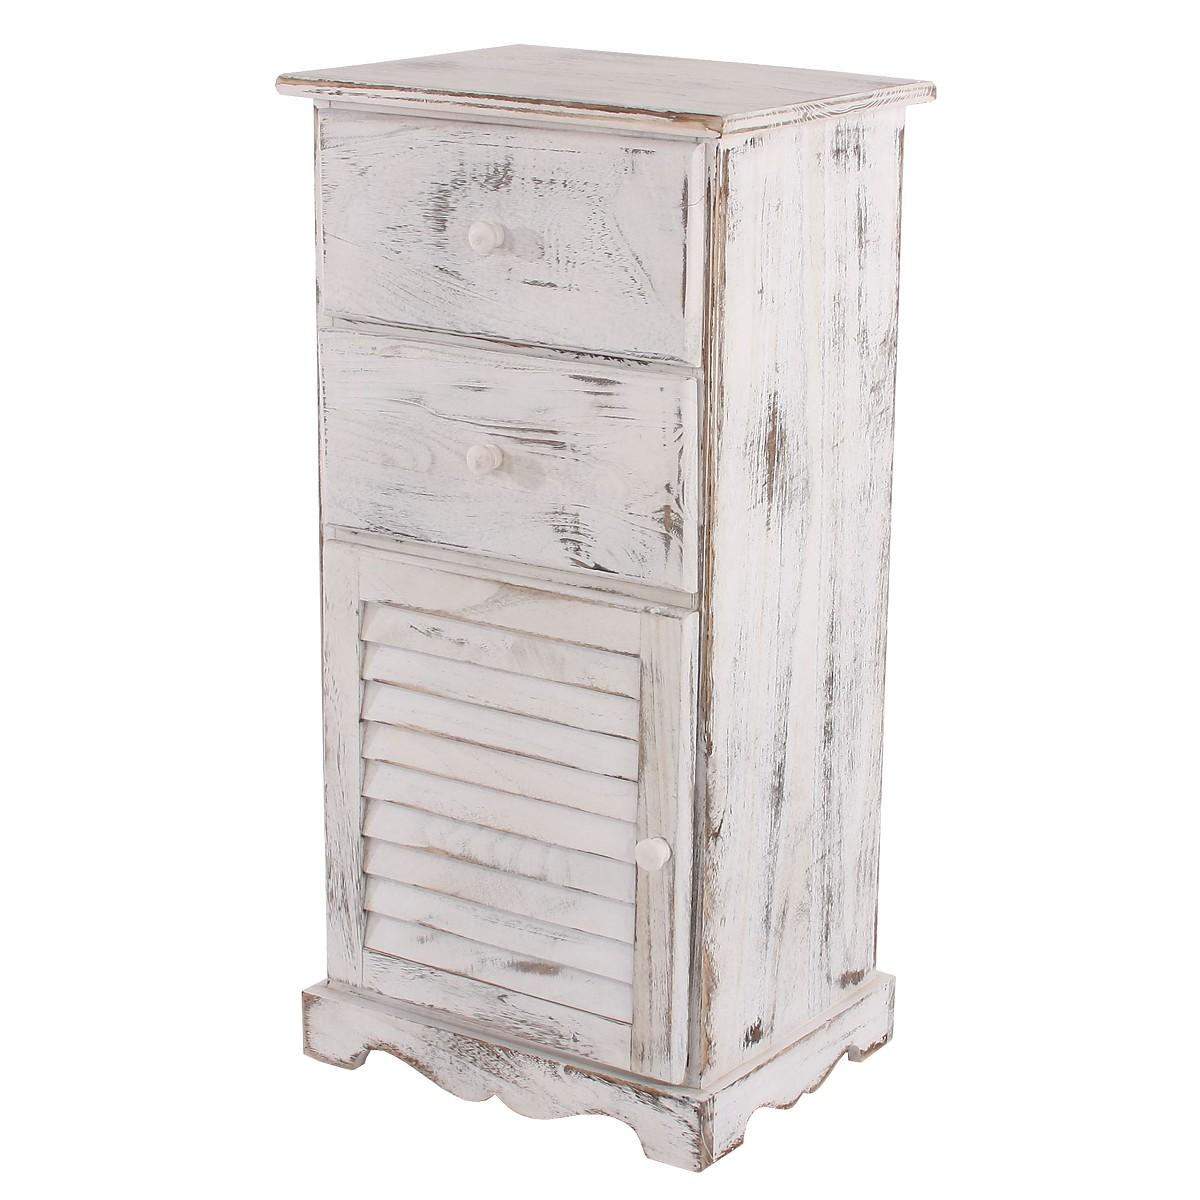 kommode 81x40x32cm shabby look vintage weiss. Black Bedroom Furniture Sets. Home Design Ideas